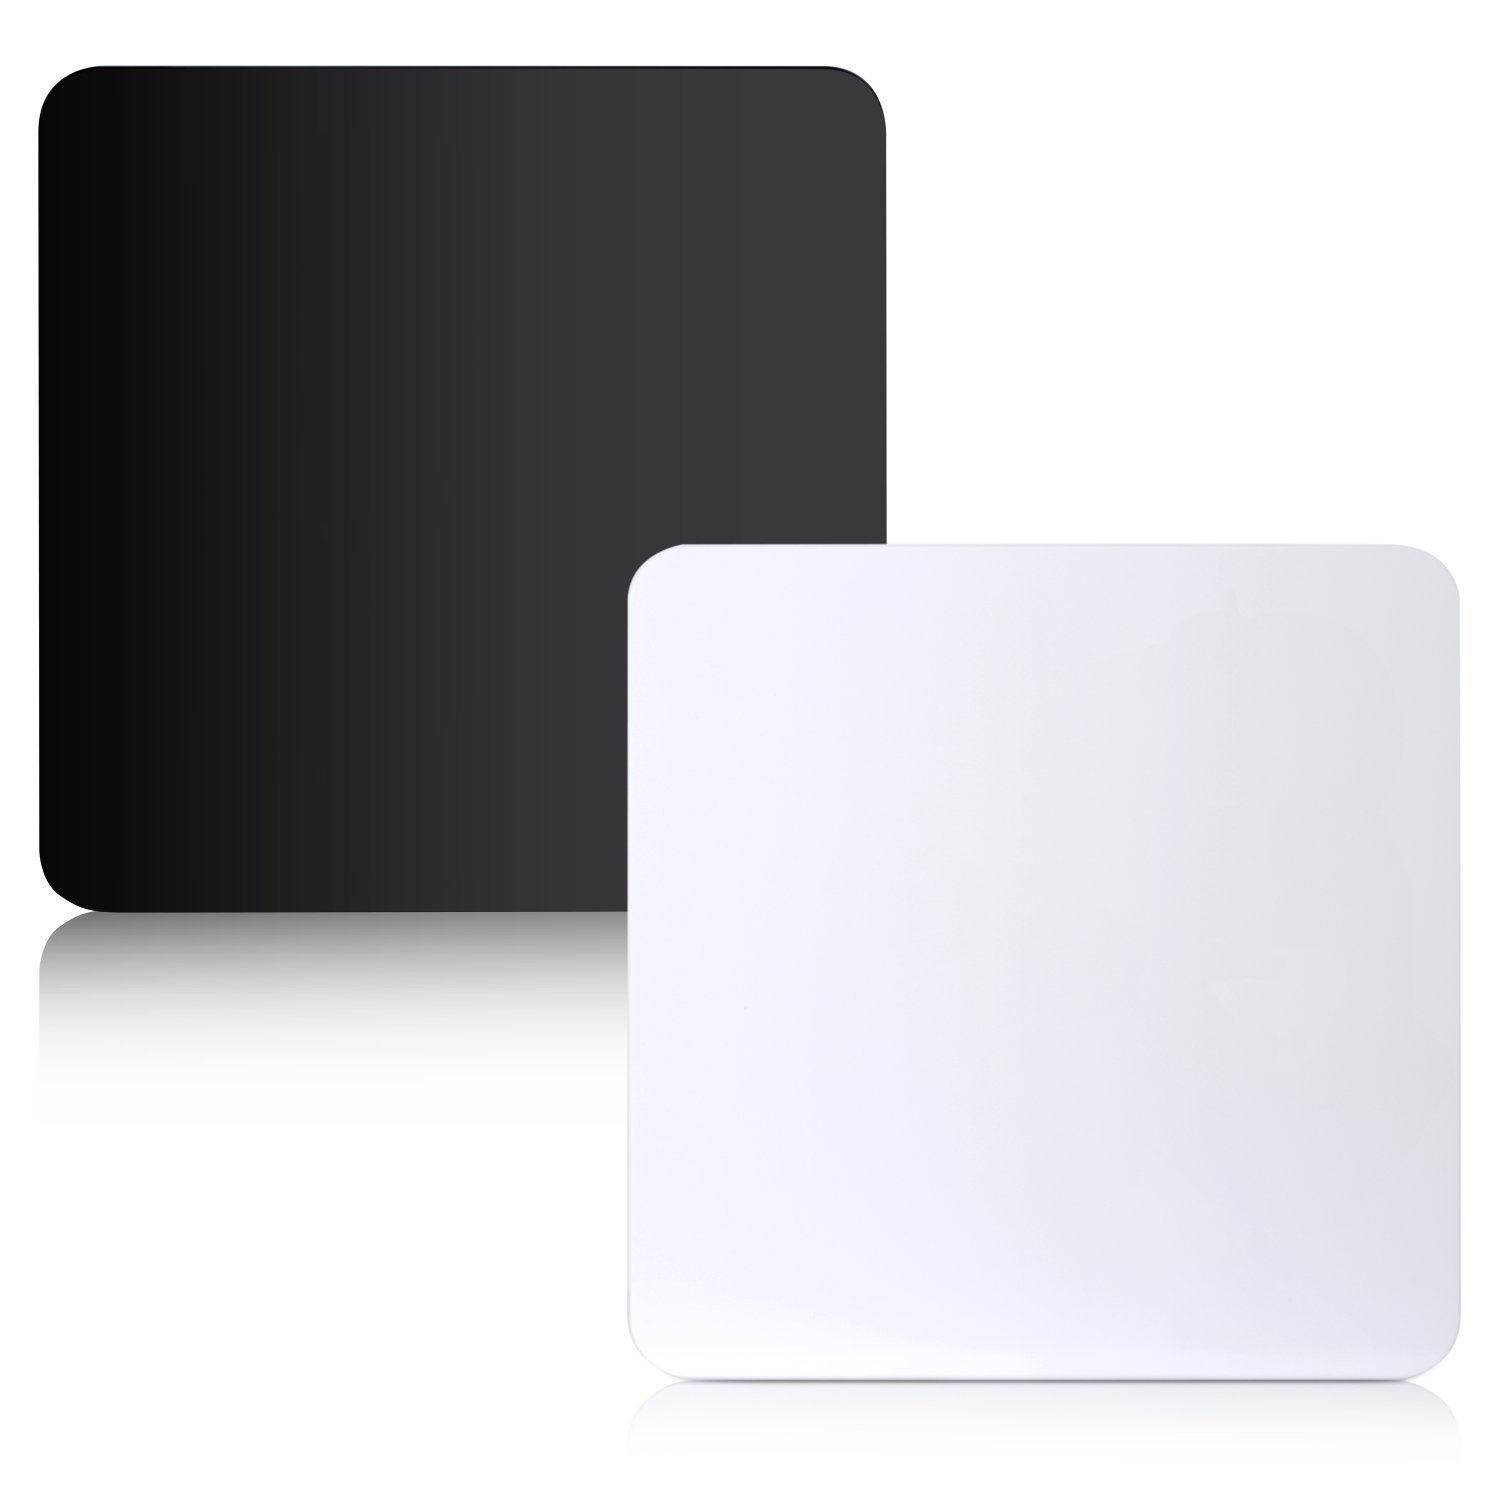 Neewer Acrylic Reflective Display Boards for Table Top Product Photography, 15.7 x 15.7 inches/40 x 40 centimeters (Black and White)